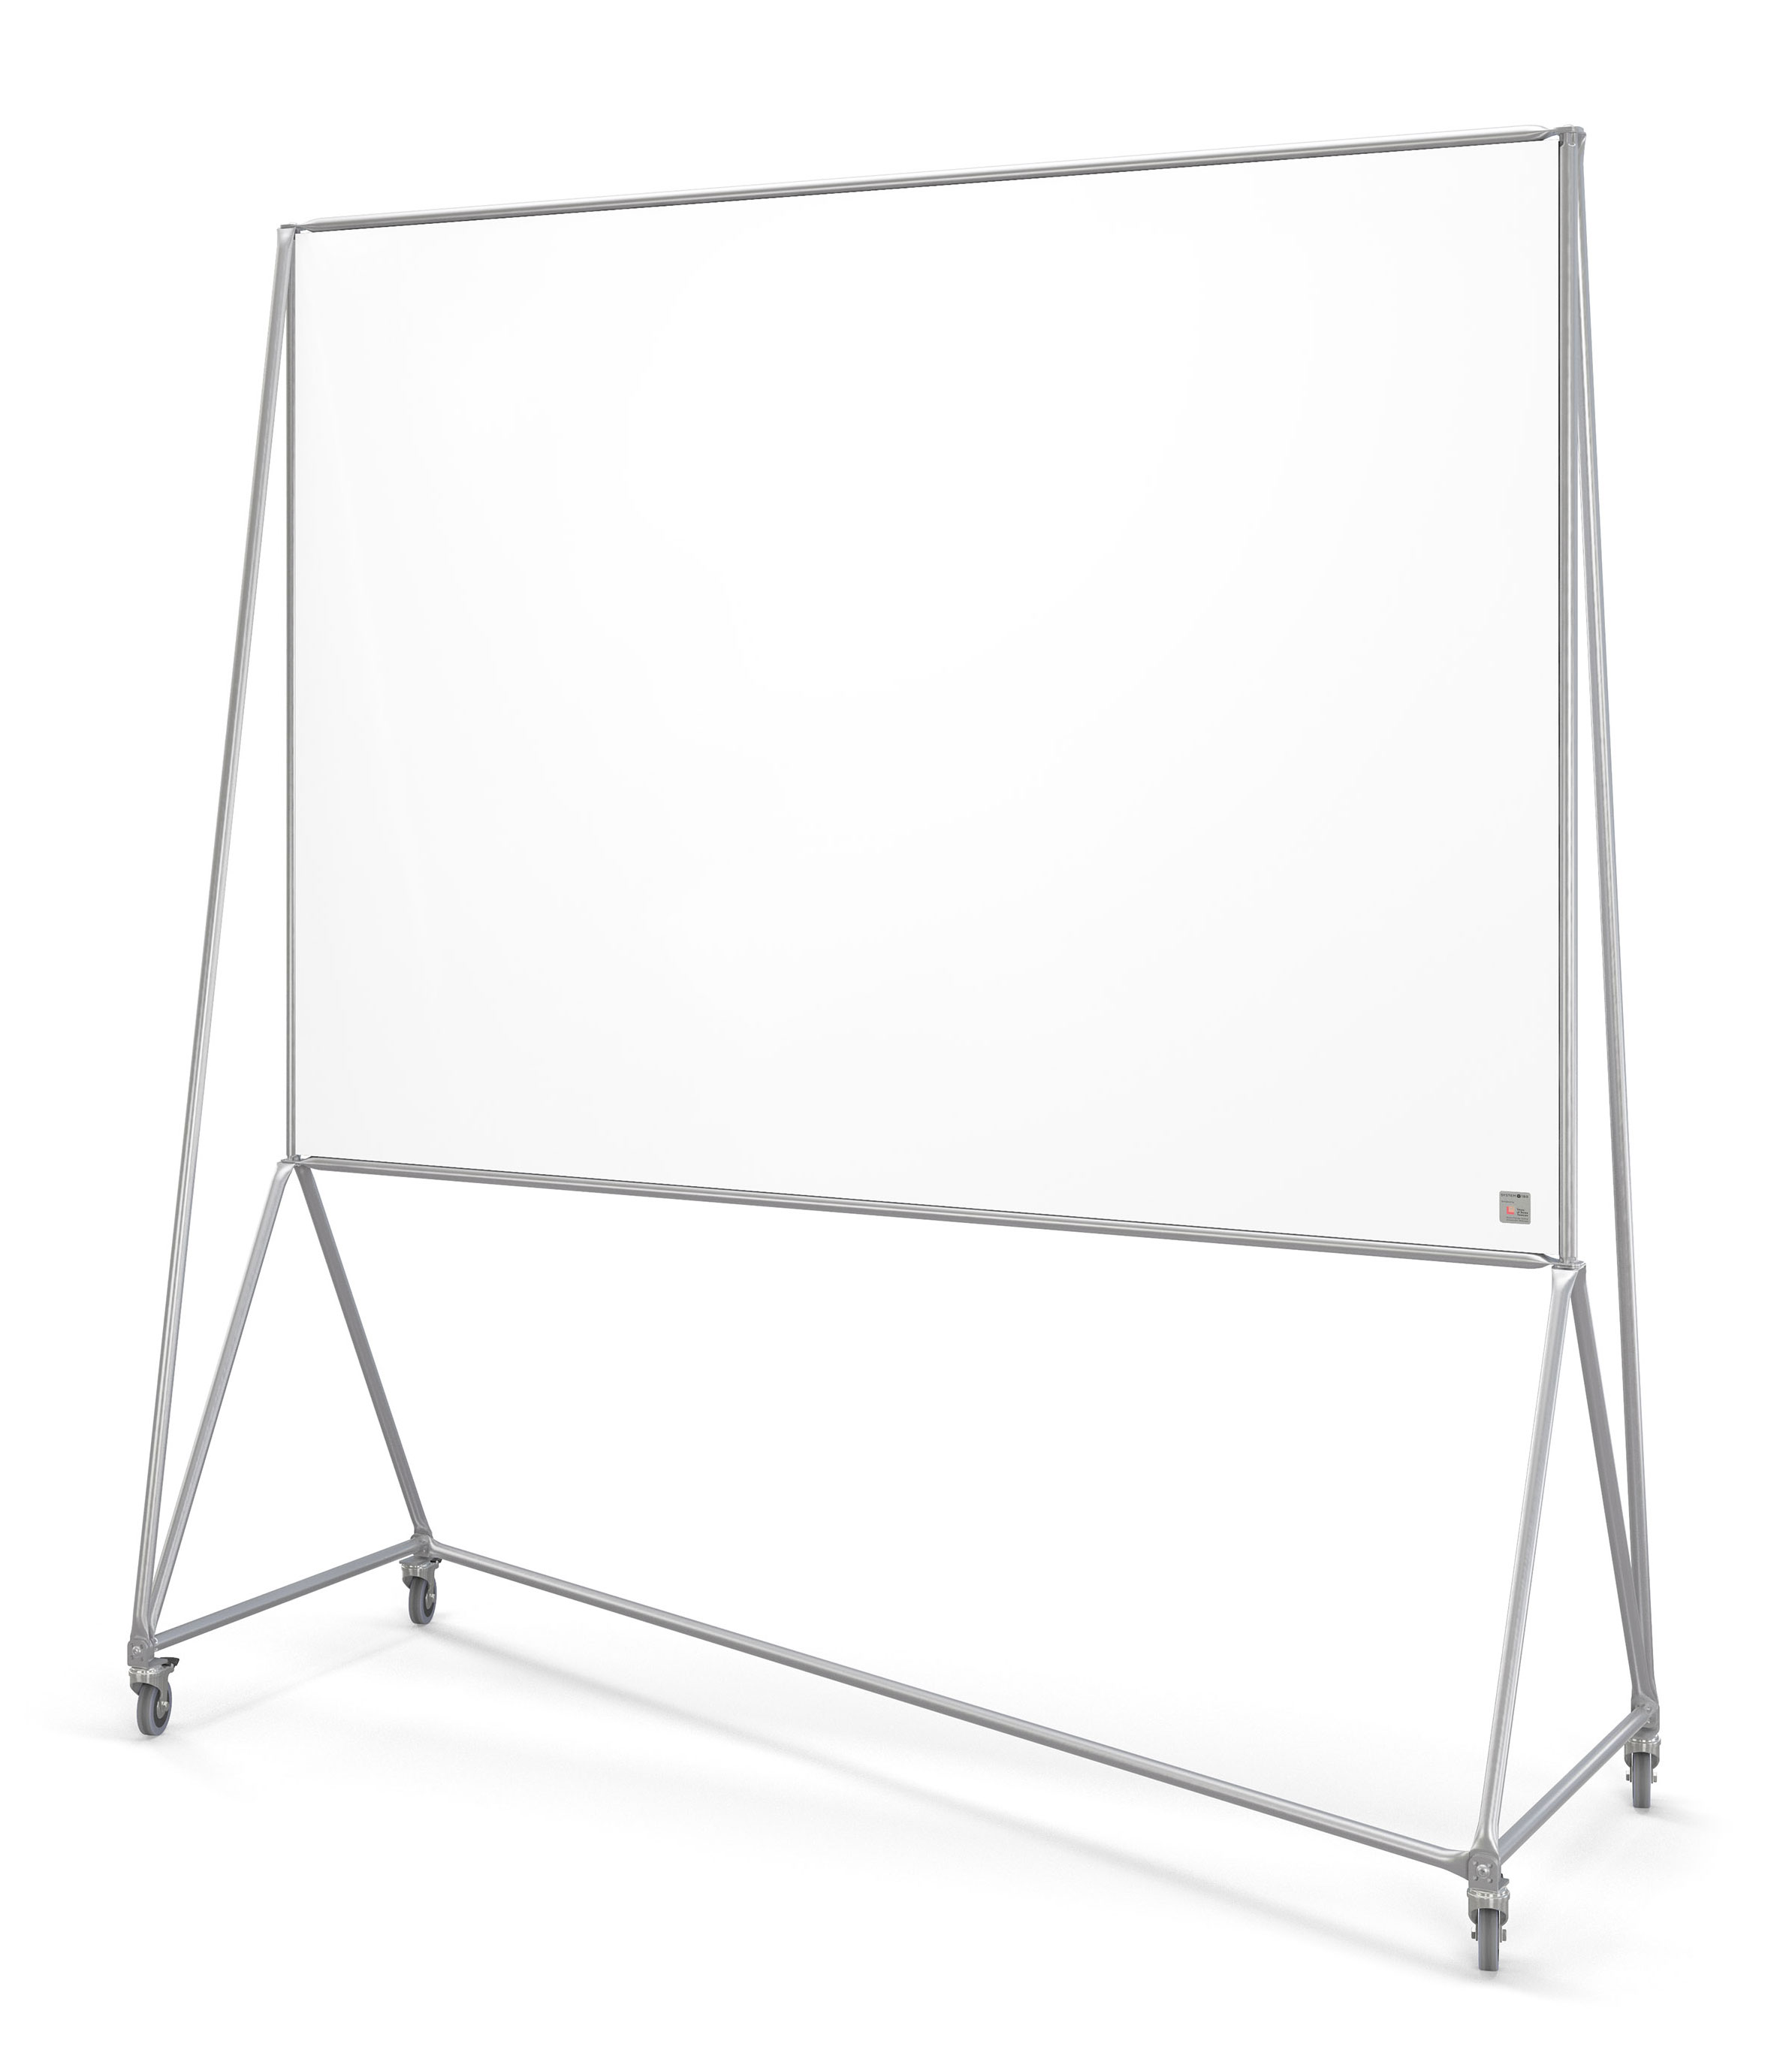 Hpi Design Thinking Whiteboard Dt Line System 180 Large I Design Deli